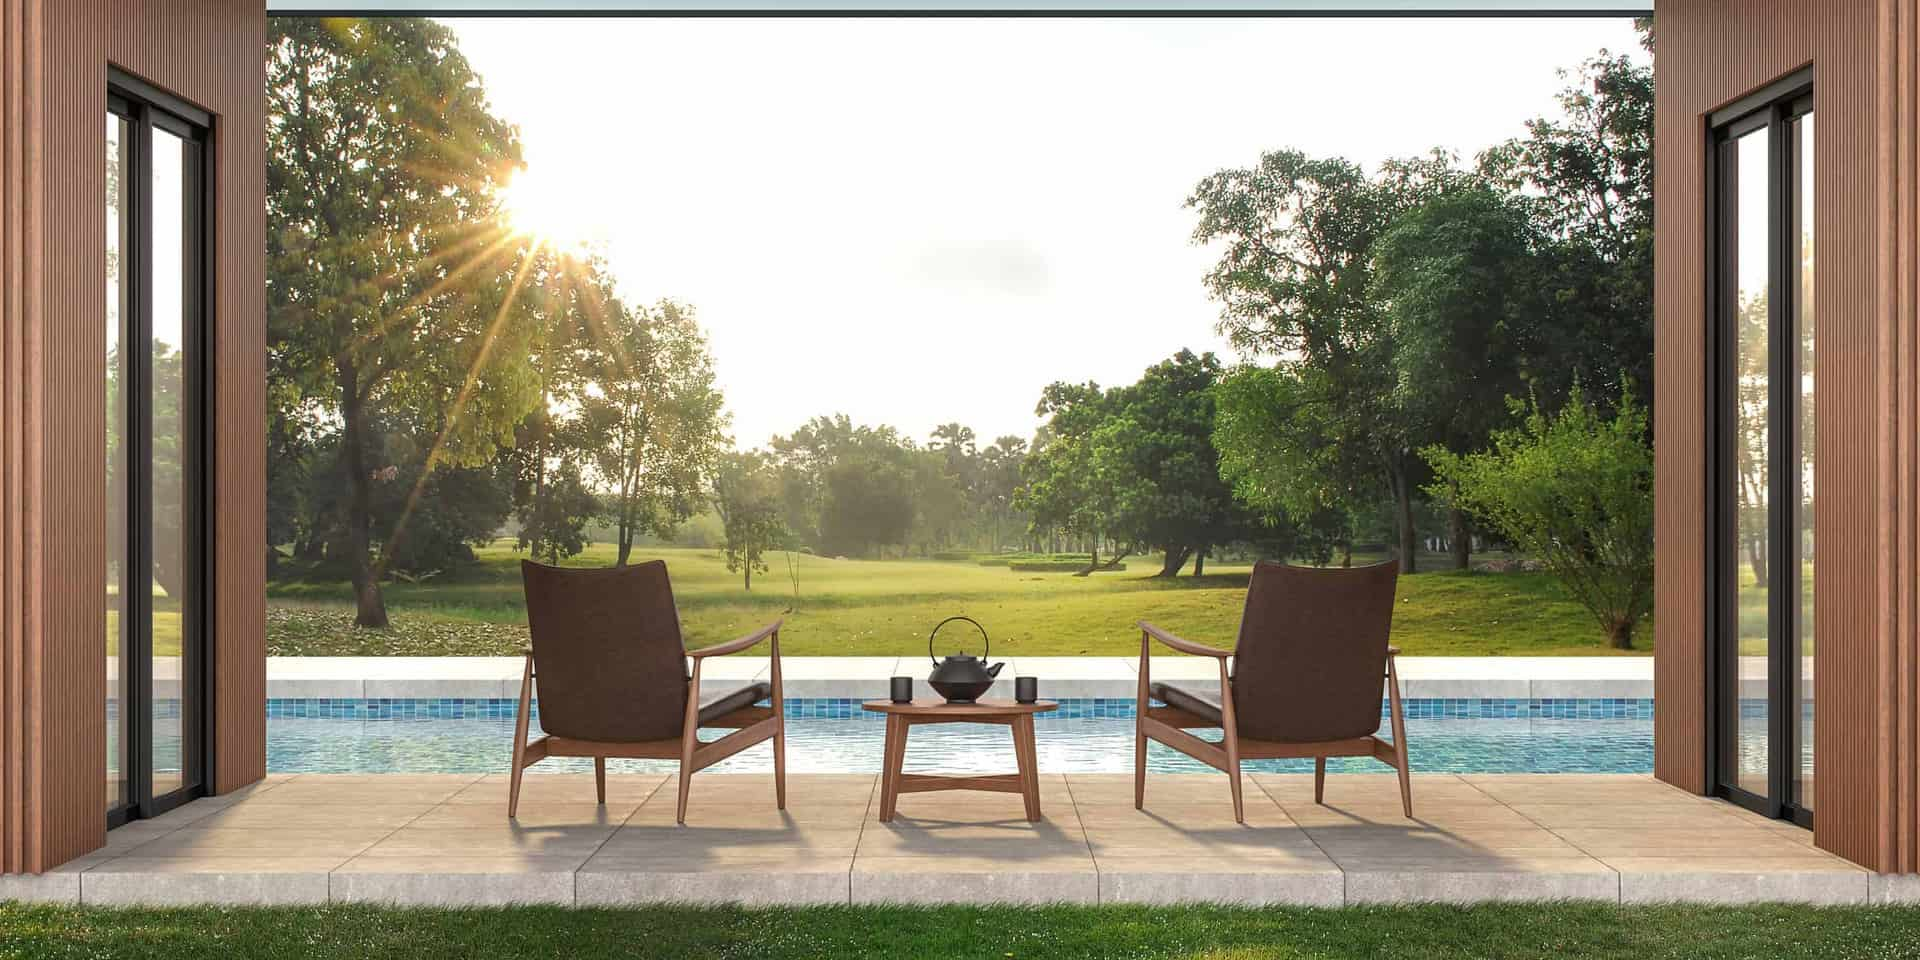 modern chairs outside modern house on patio looking over pool in backyard